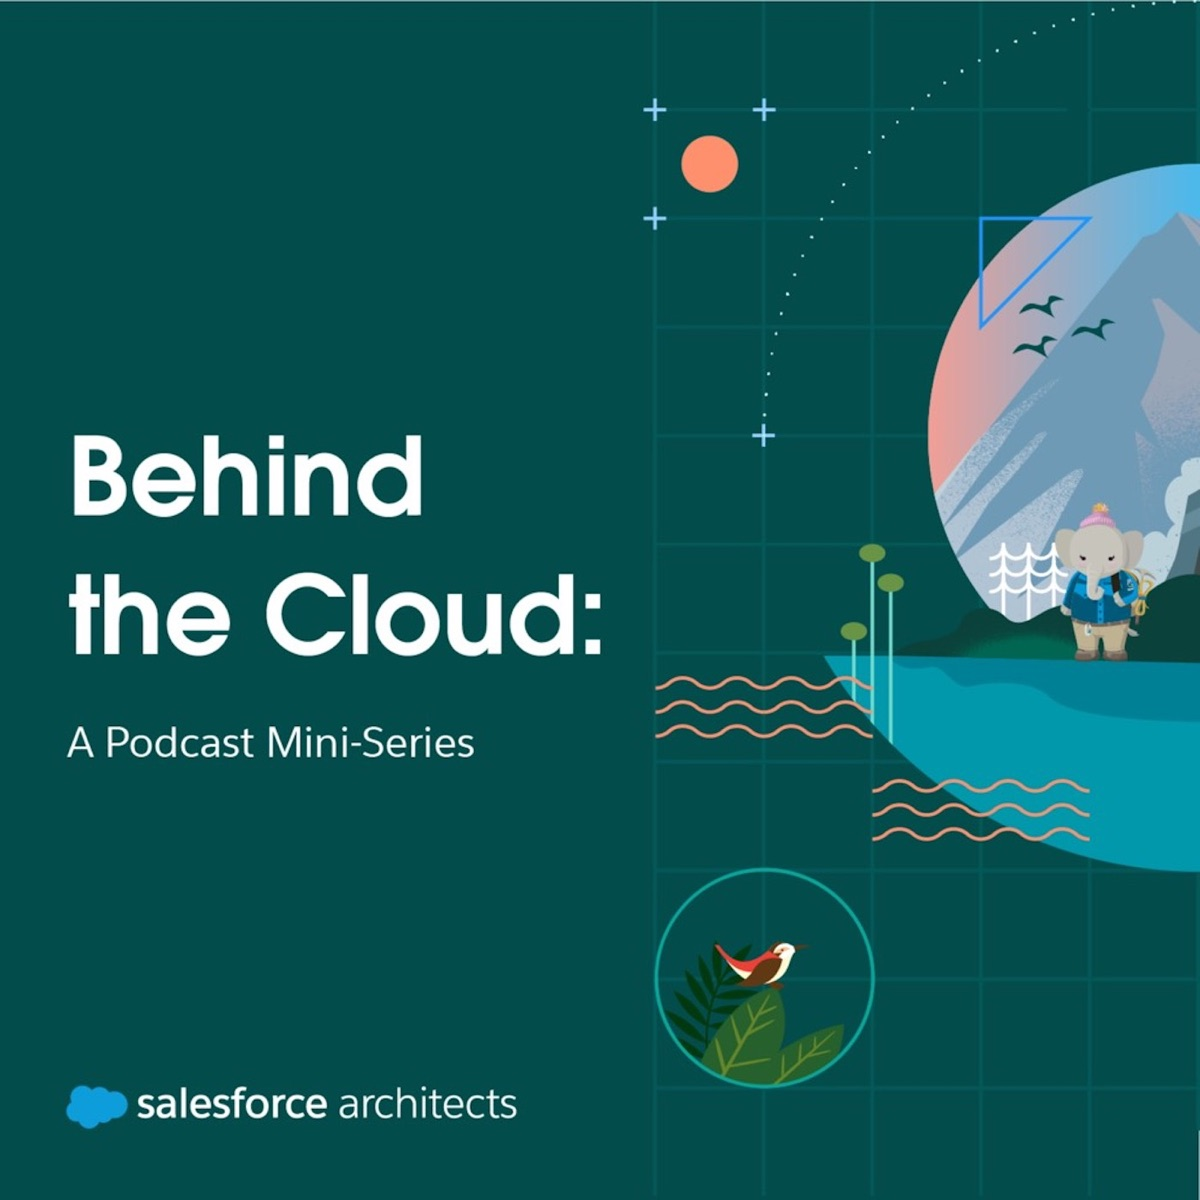 Behind the Cloud: A Salesforce Architect's Podcast Mini-Series